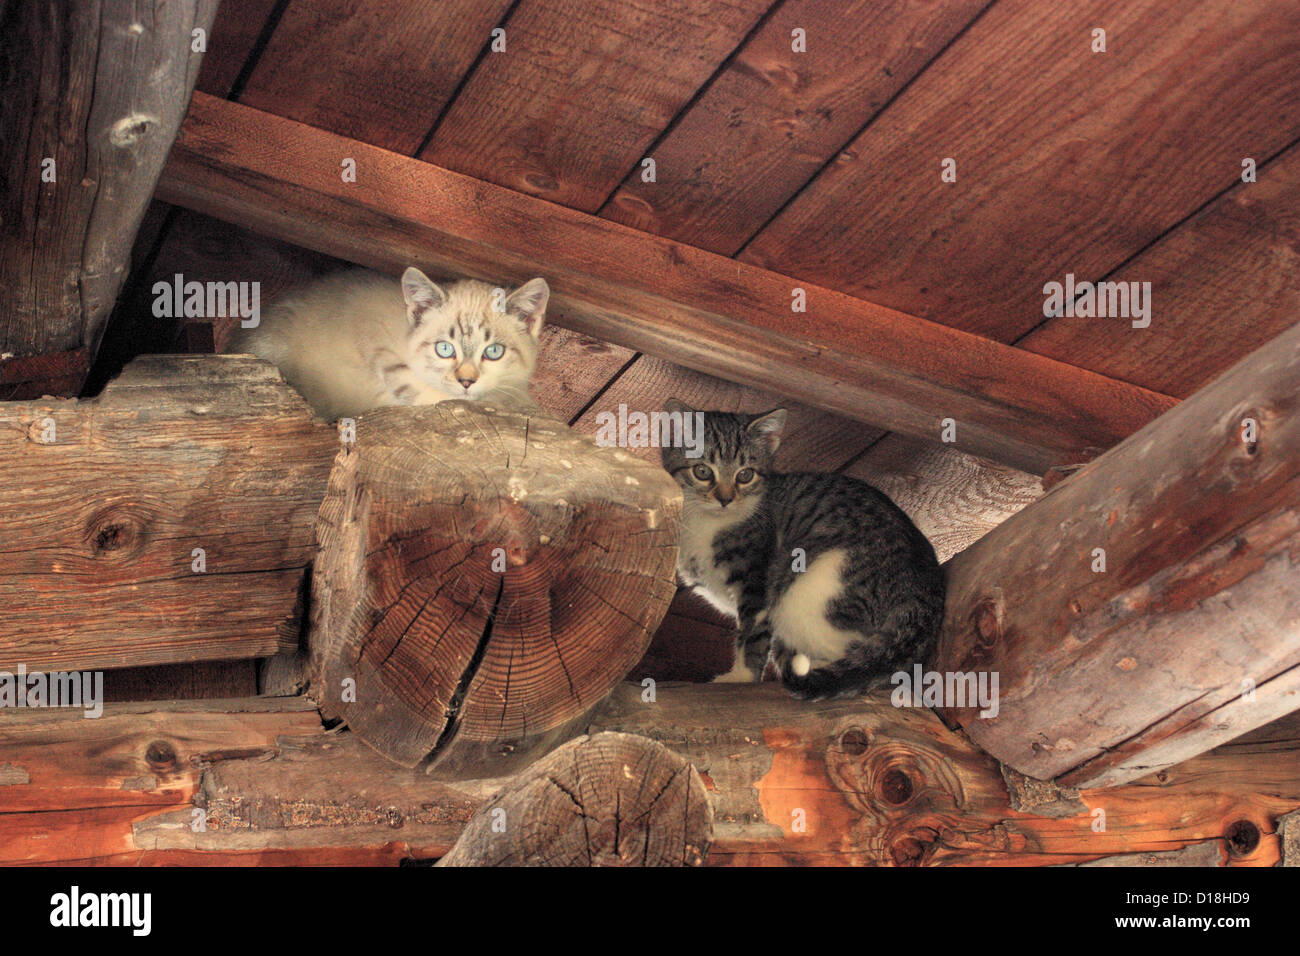 Cats in a wooden roof top. Stock Photo